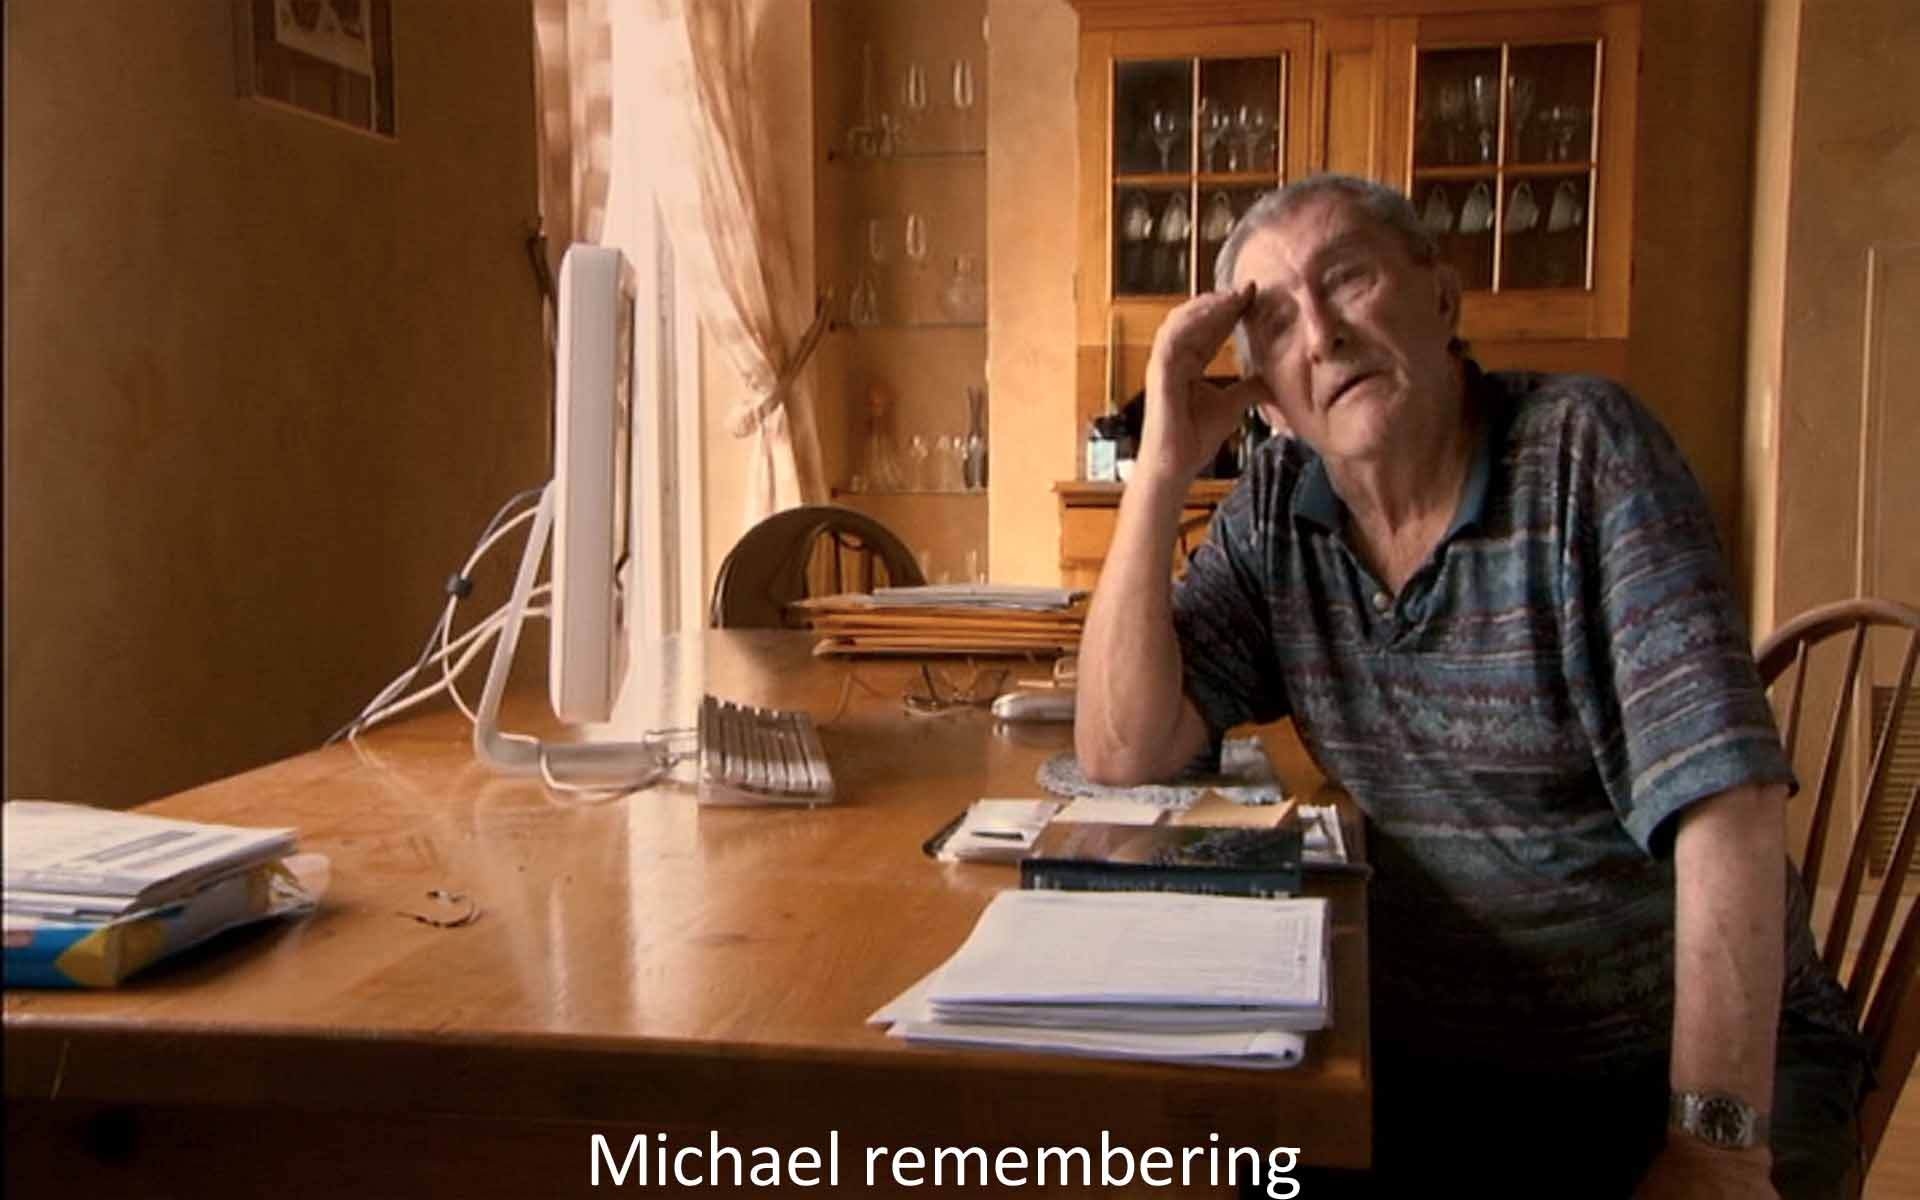 Michael remembering